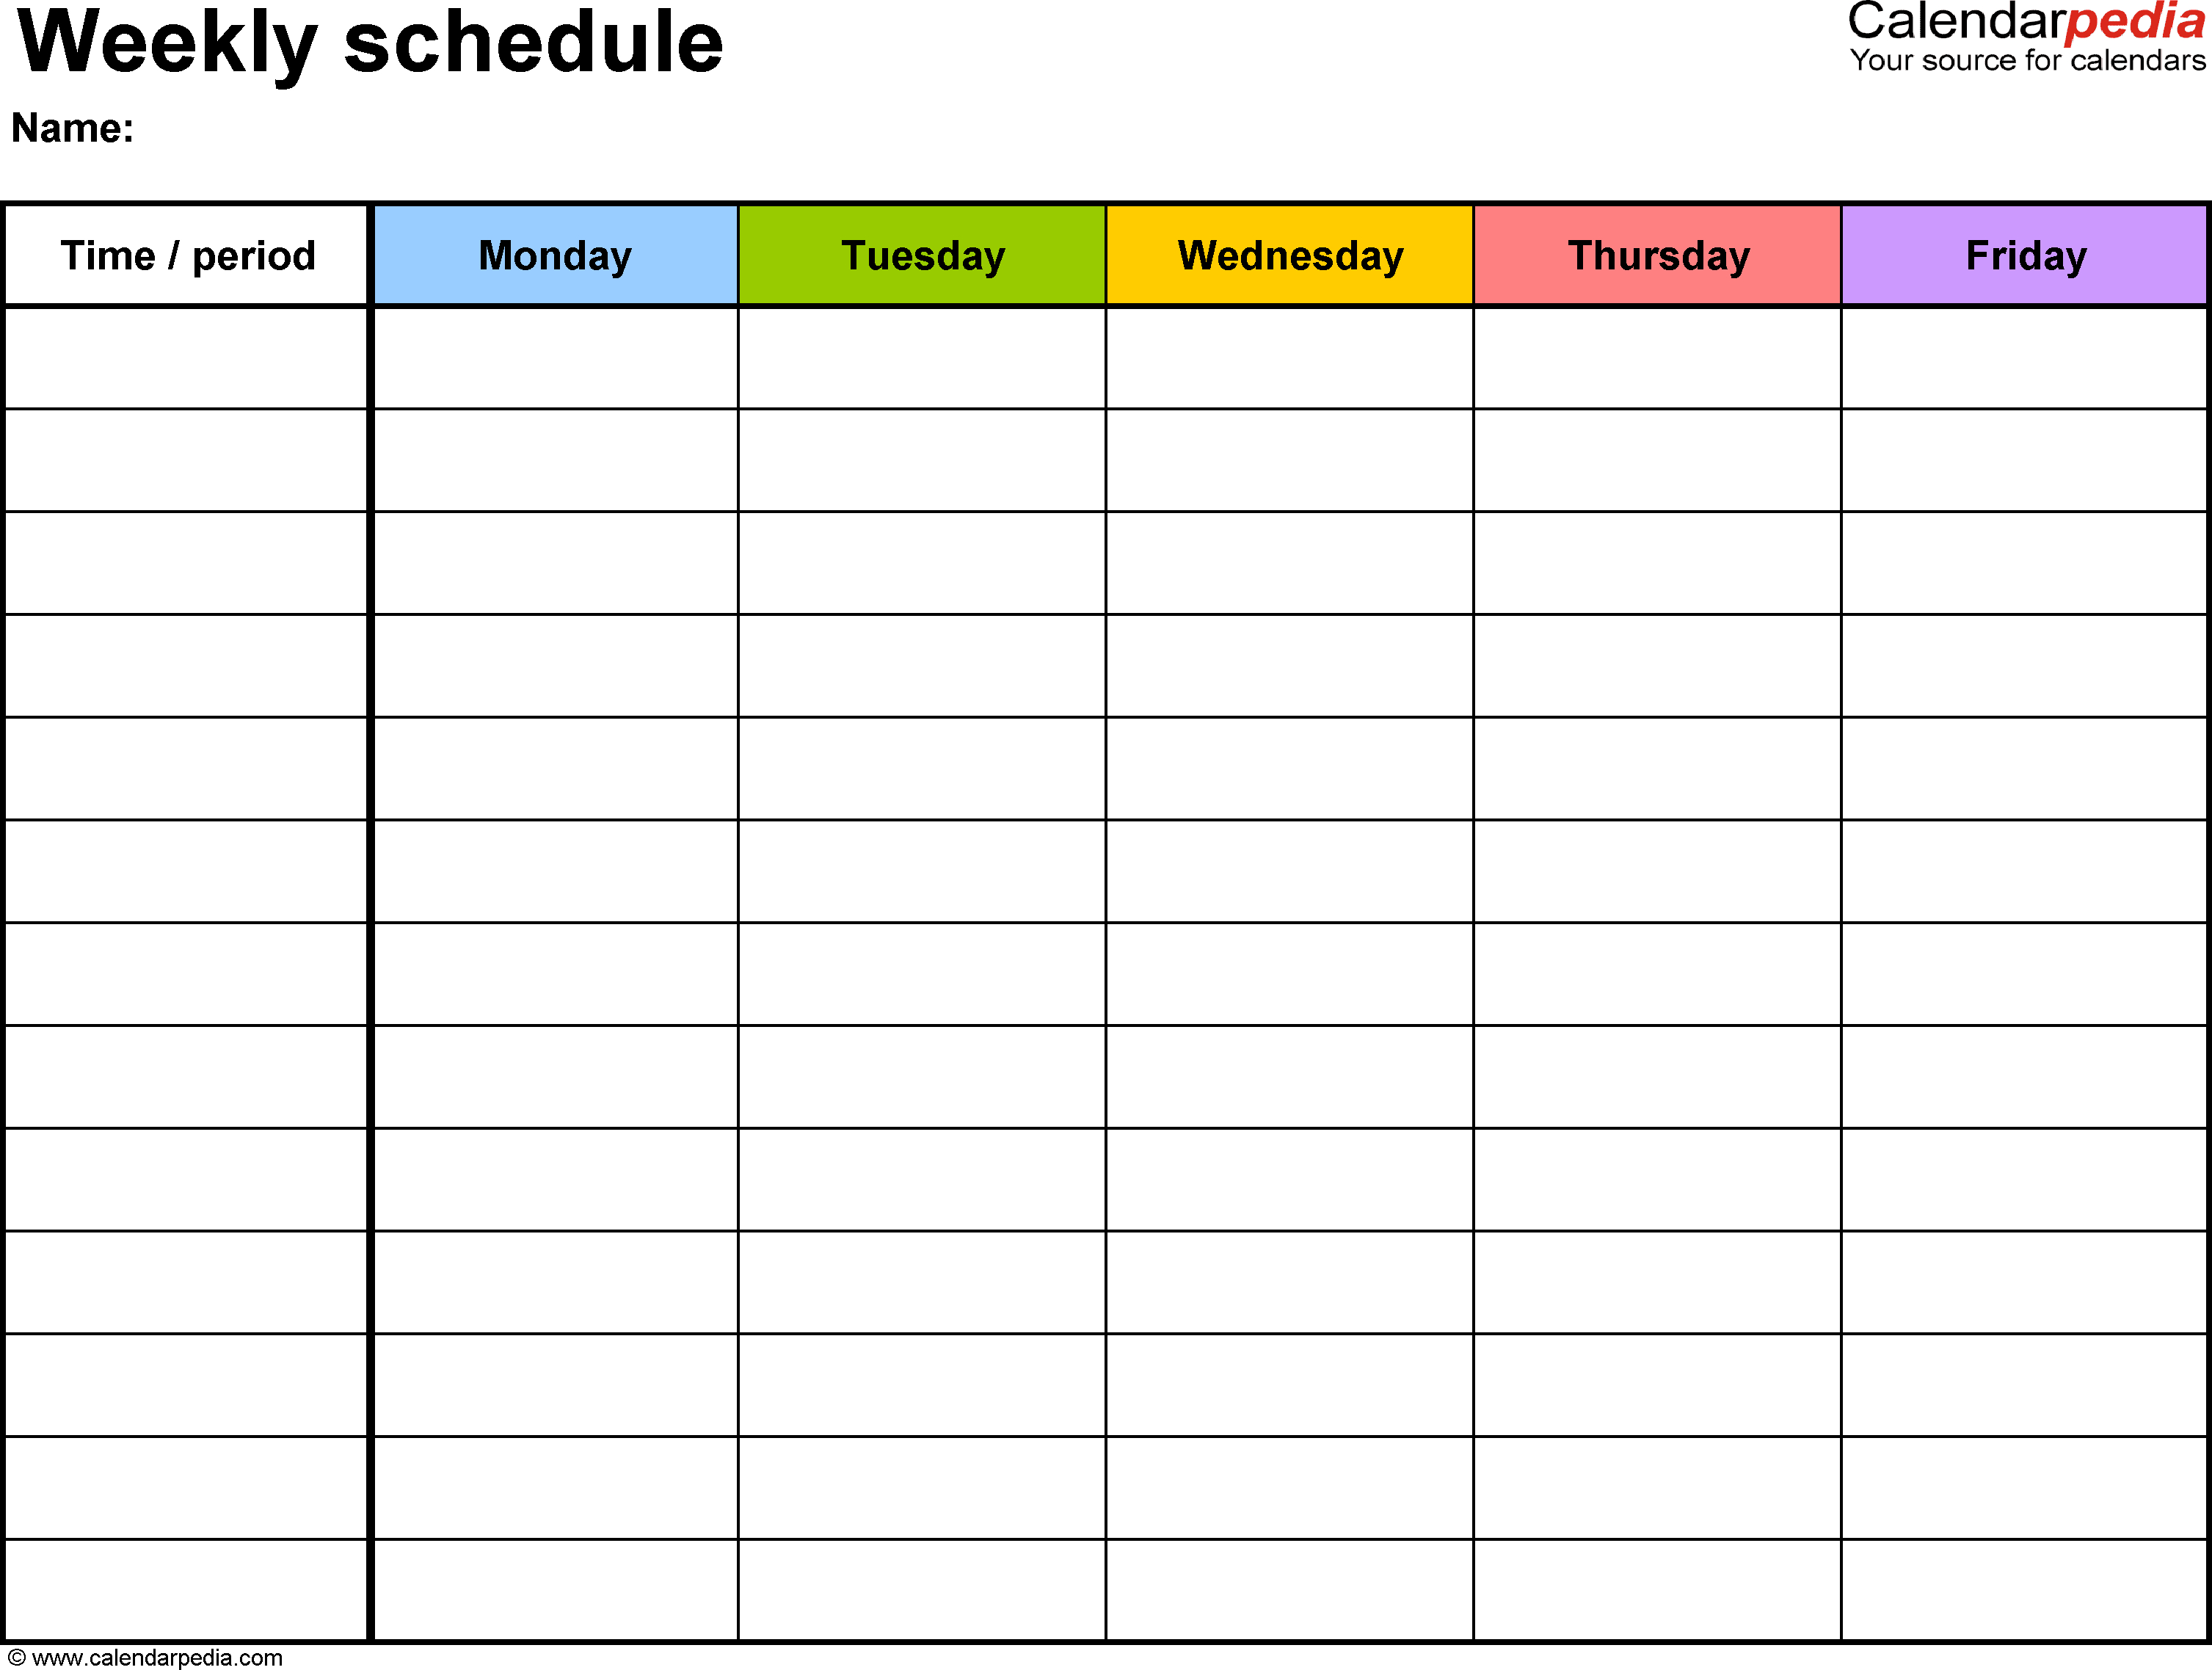 Weekly Schedule Template For Word Version 1: Landscape, 1 Weekly Calendar Template Monday To Friday